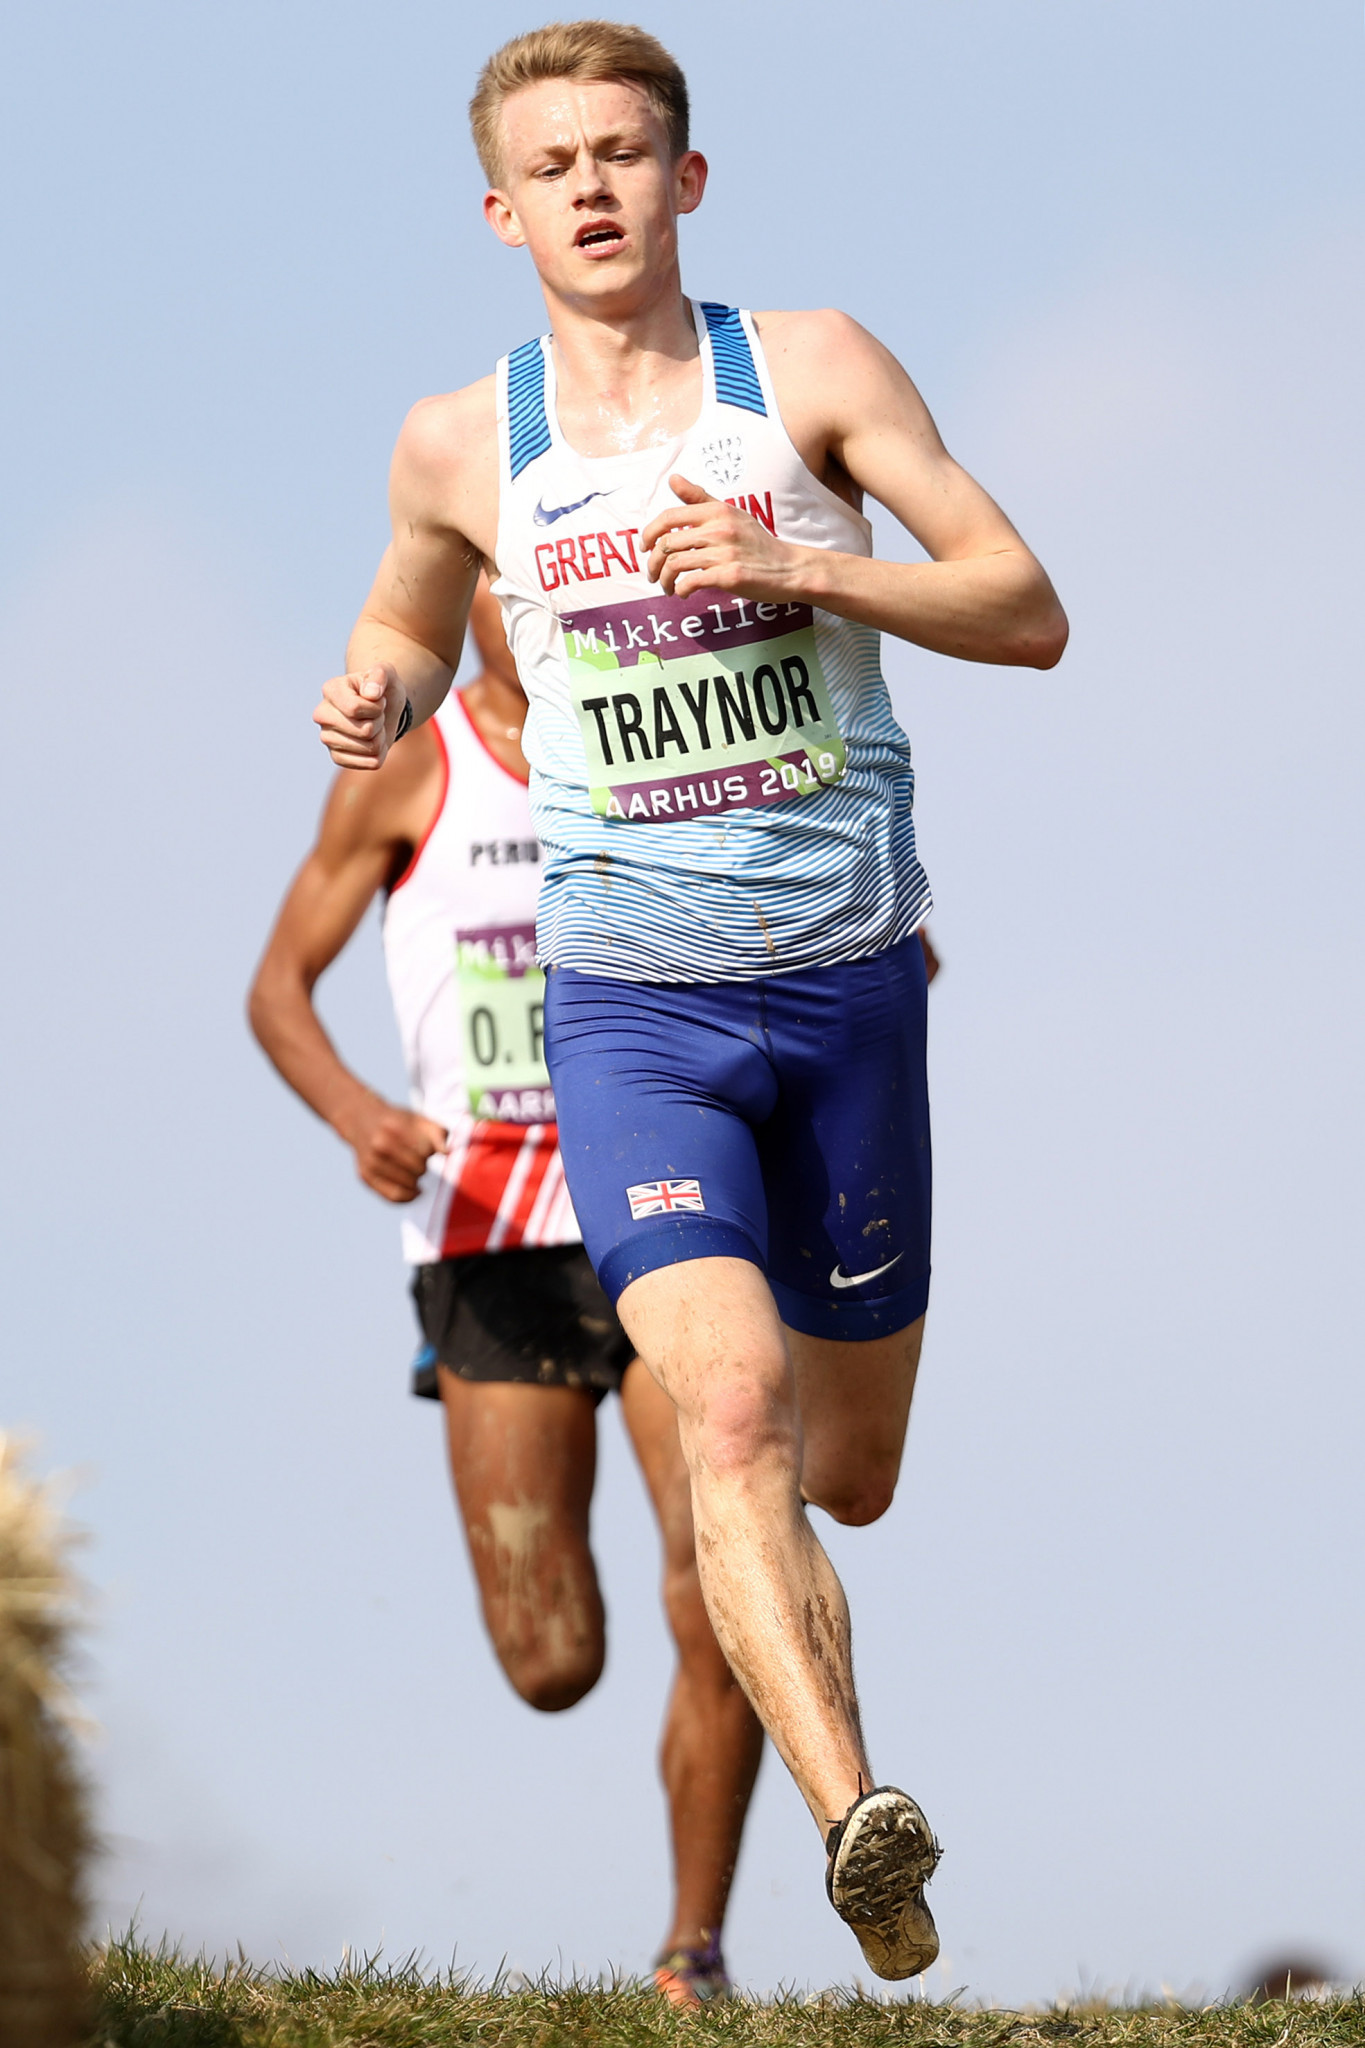 Luke Traynor was one of six athletes to have their bans reduced by UKAD ©Getty Images